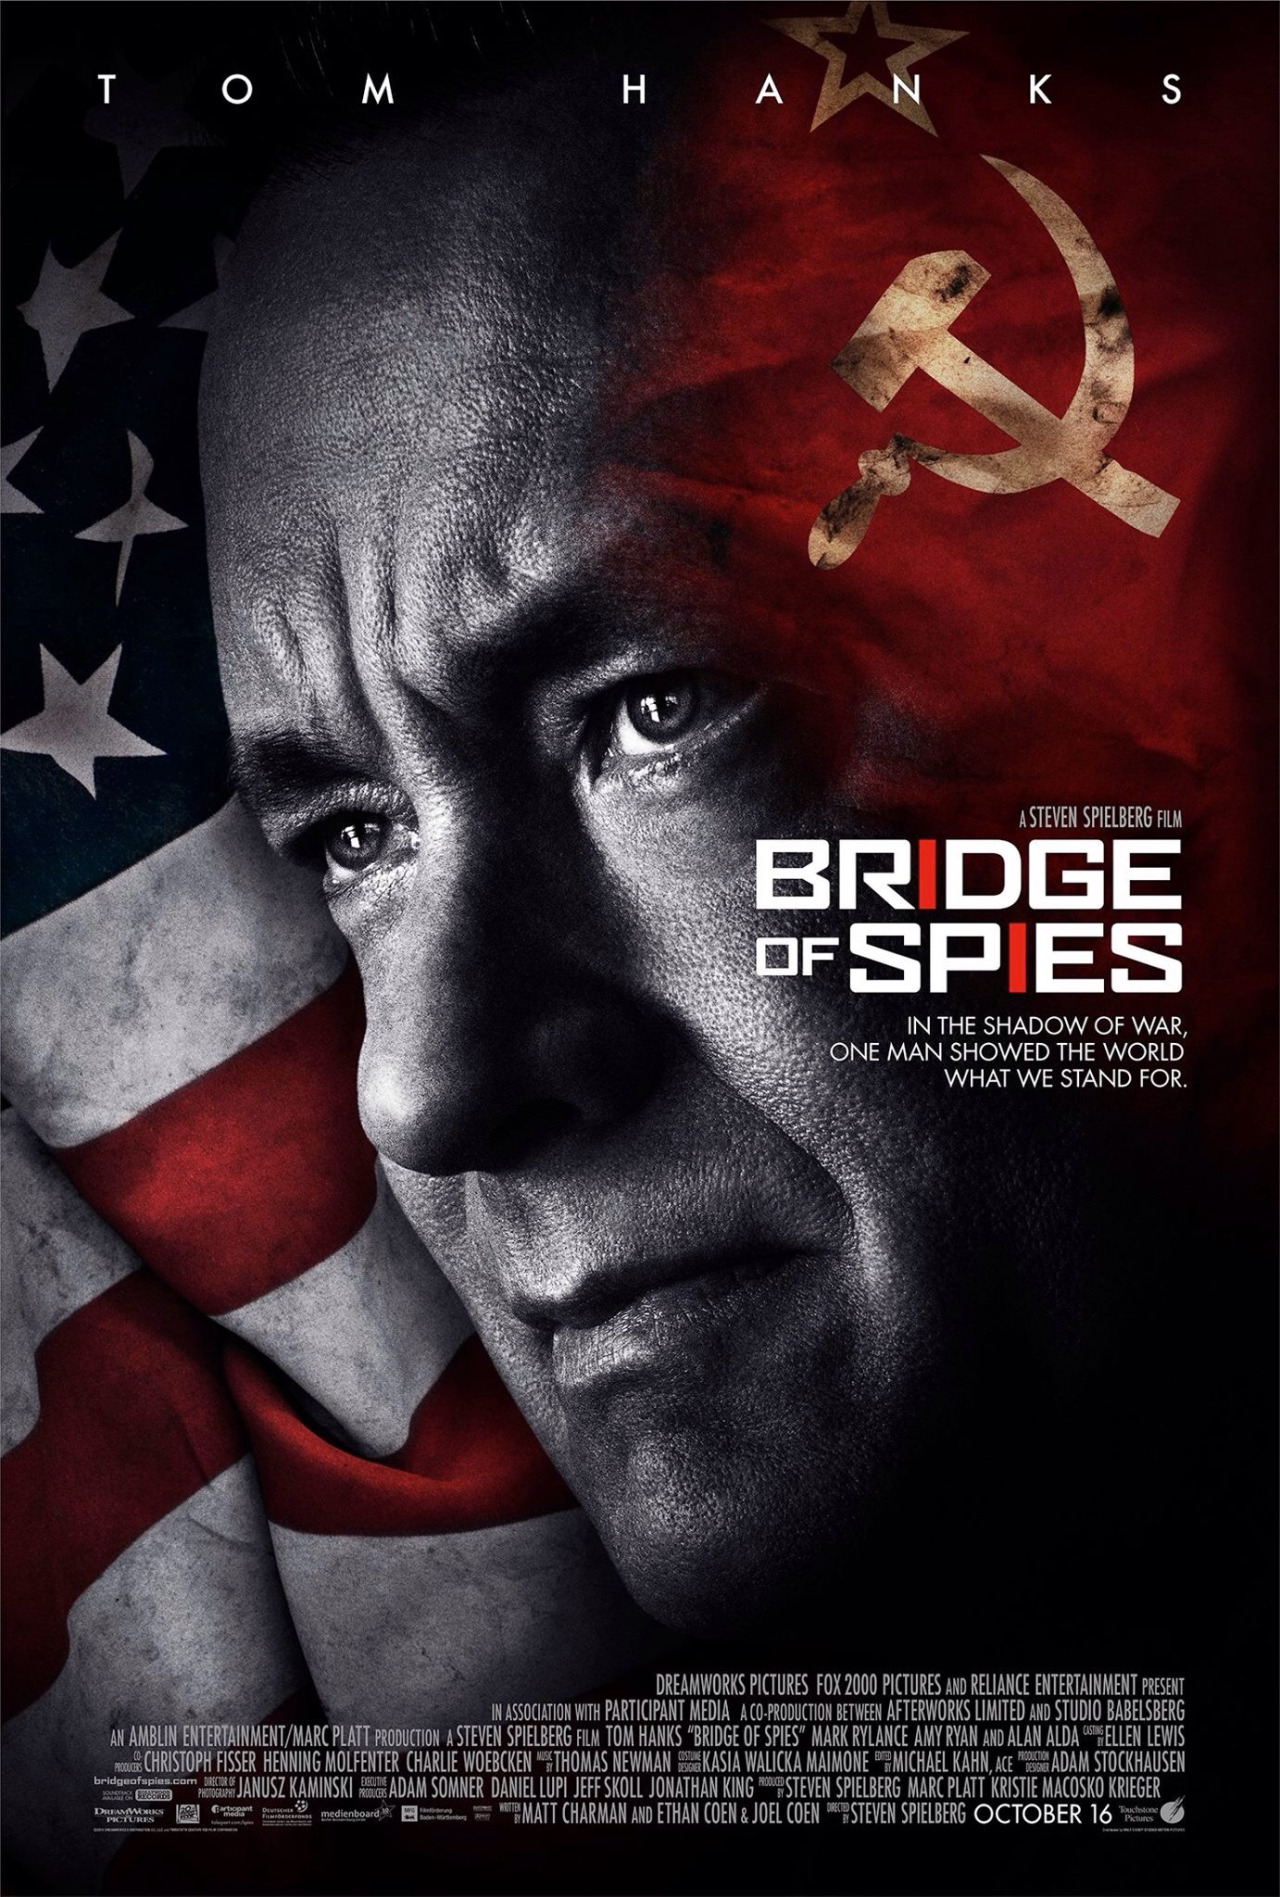 間諜之橋 Bridge of Spies